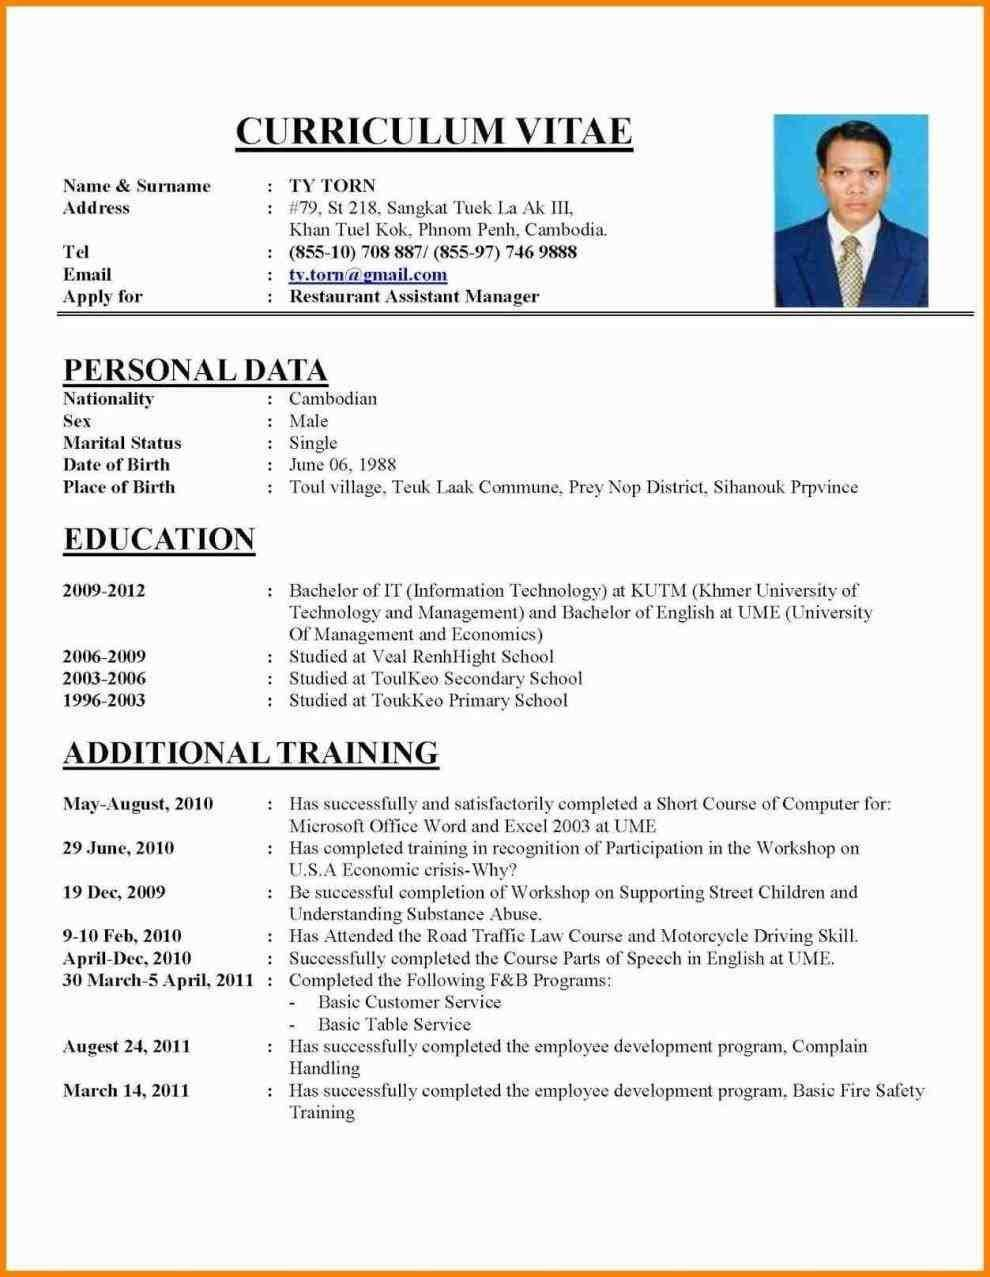 cv template job application resume format best sample creating the perfect office Resume Creating The Perfect Resume